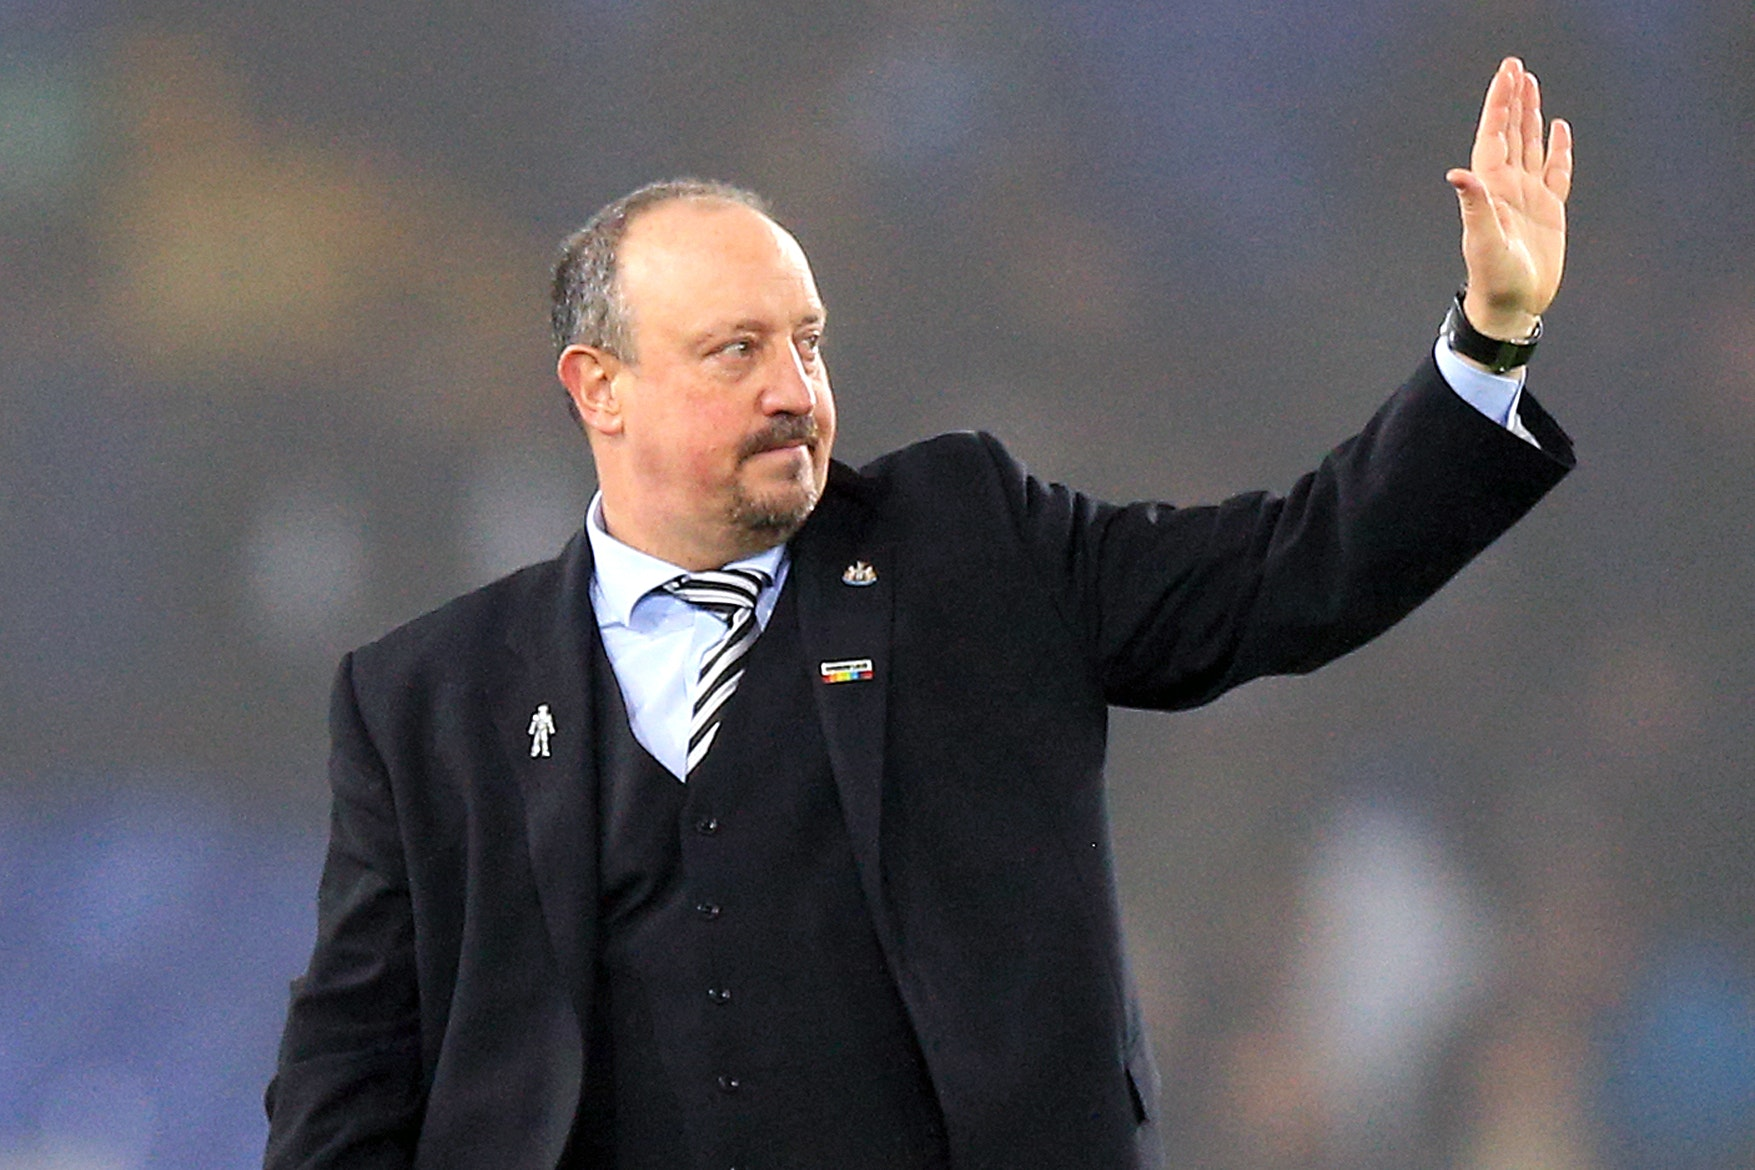 Newcastle manager Rafael Benitez has thanked the club's fans for their support